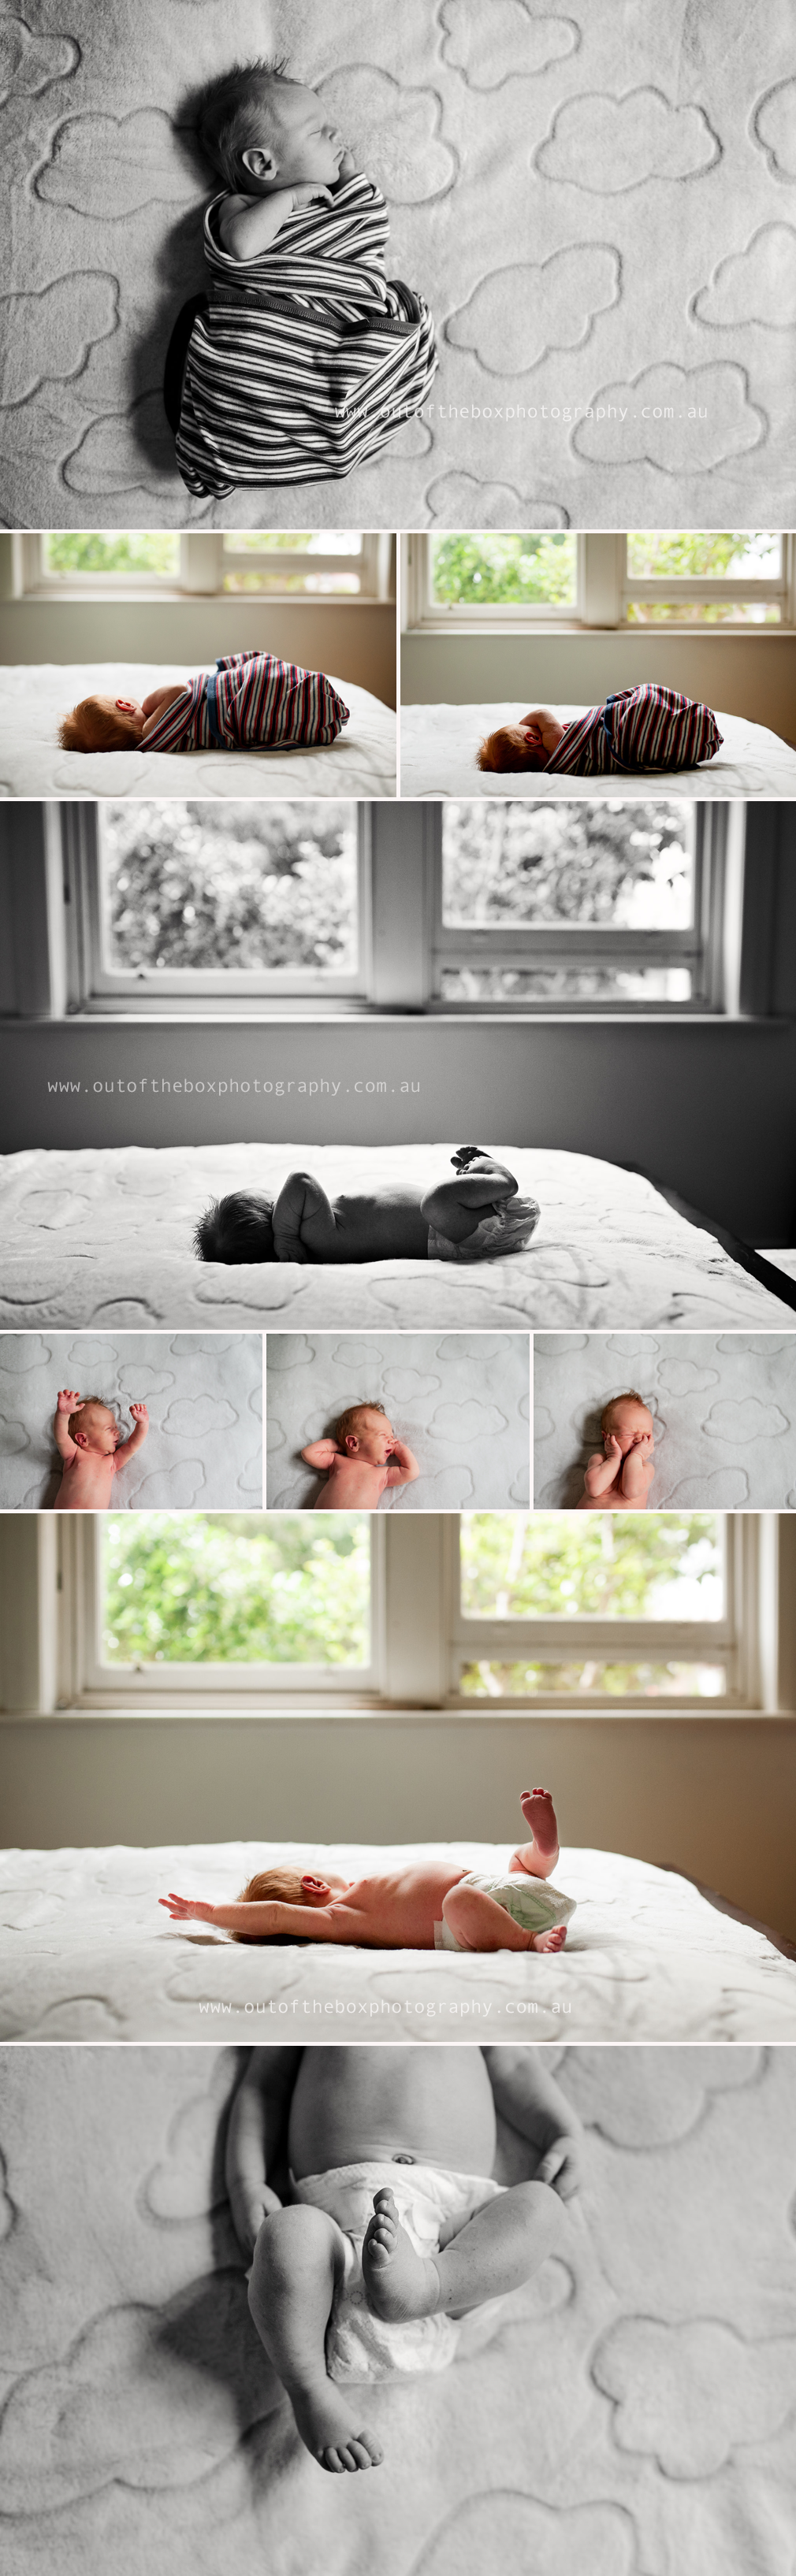 lifestyle-photography-newborn-baby-boy-1